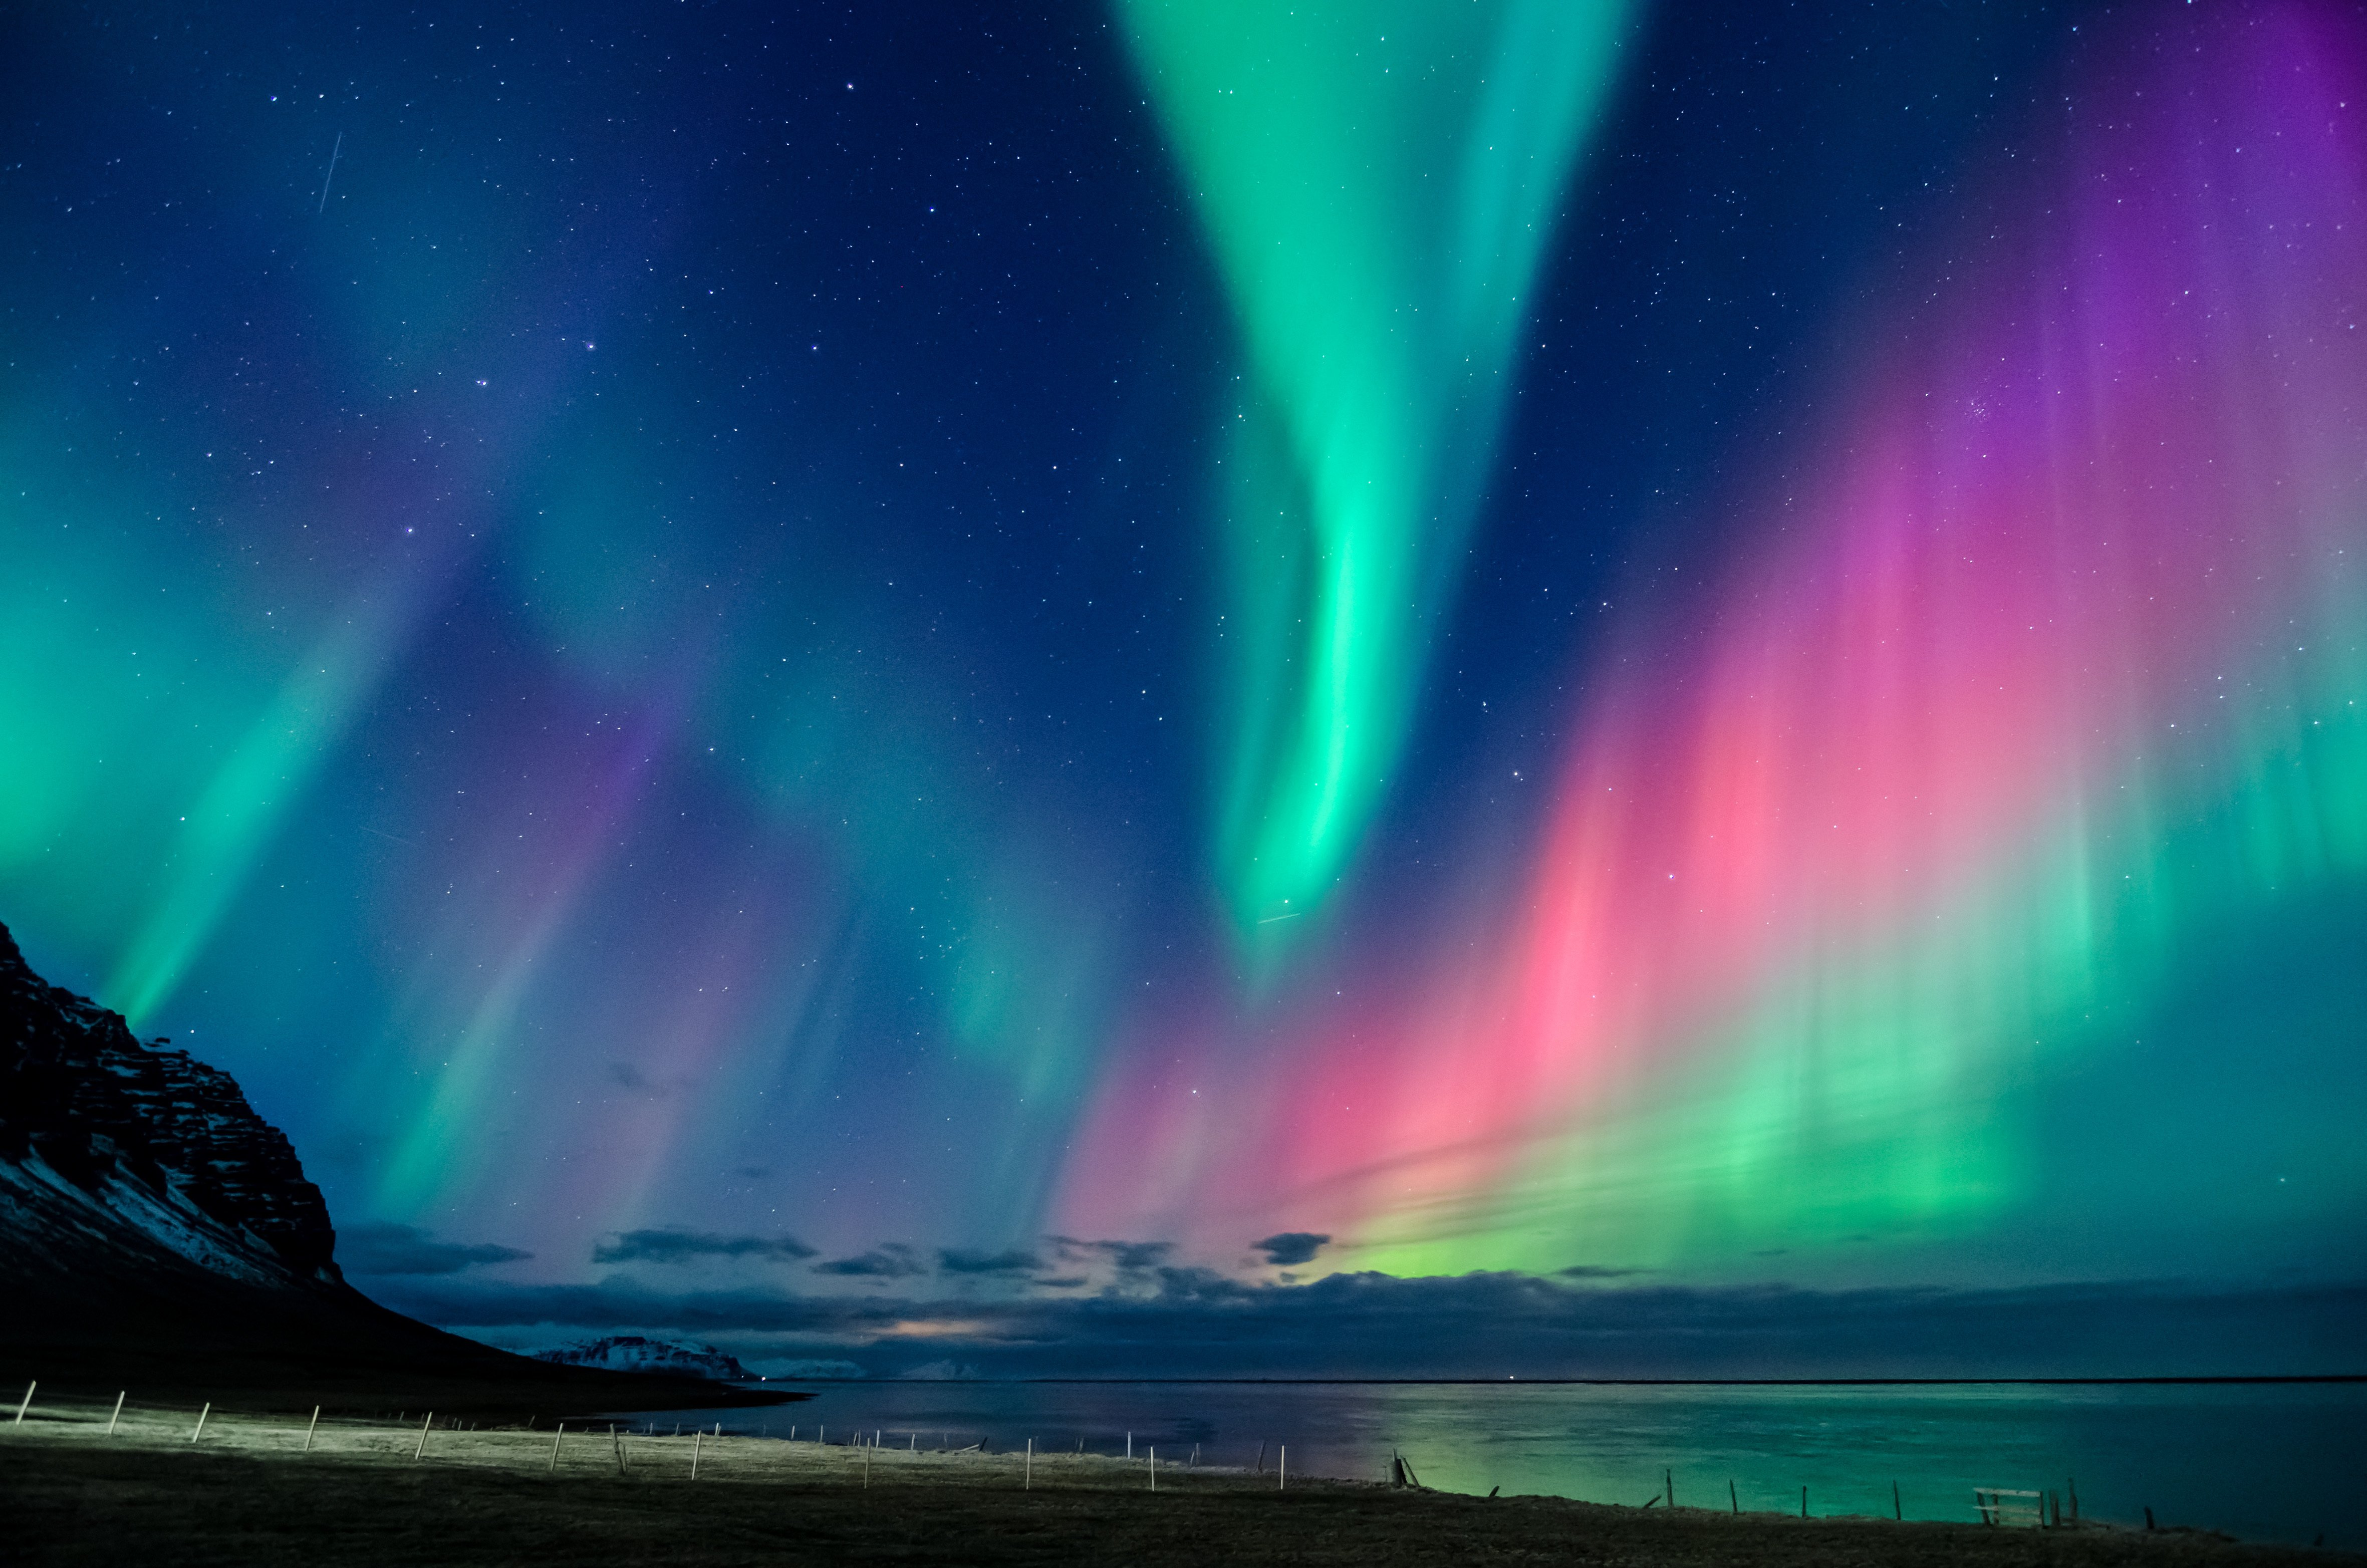 northern lights in all the colors of the rainbow dance across the sky in iceland 6 The Northern Lights Could Be Visible Across The UK This Weekend